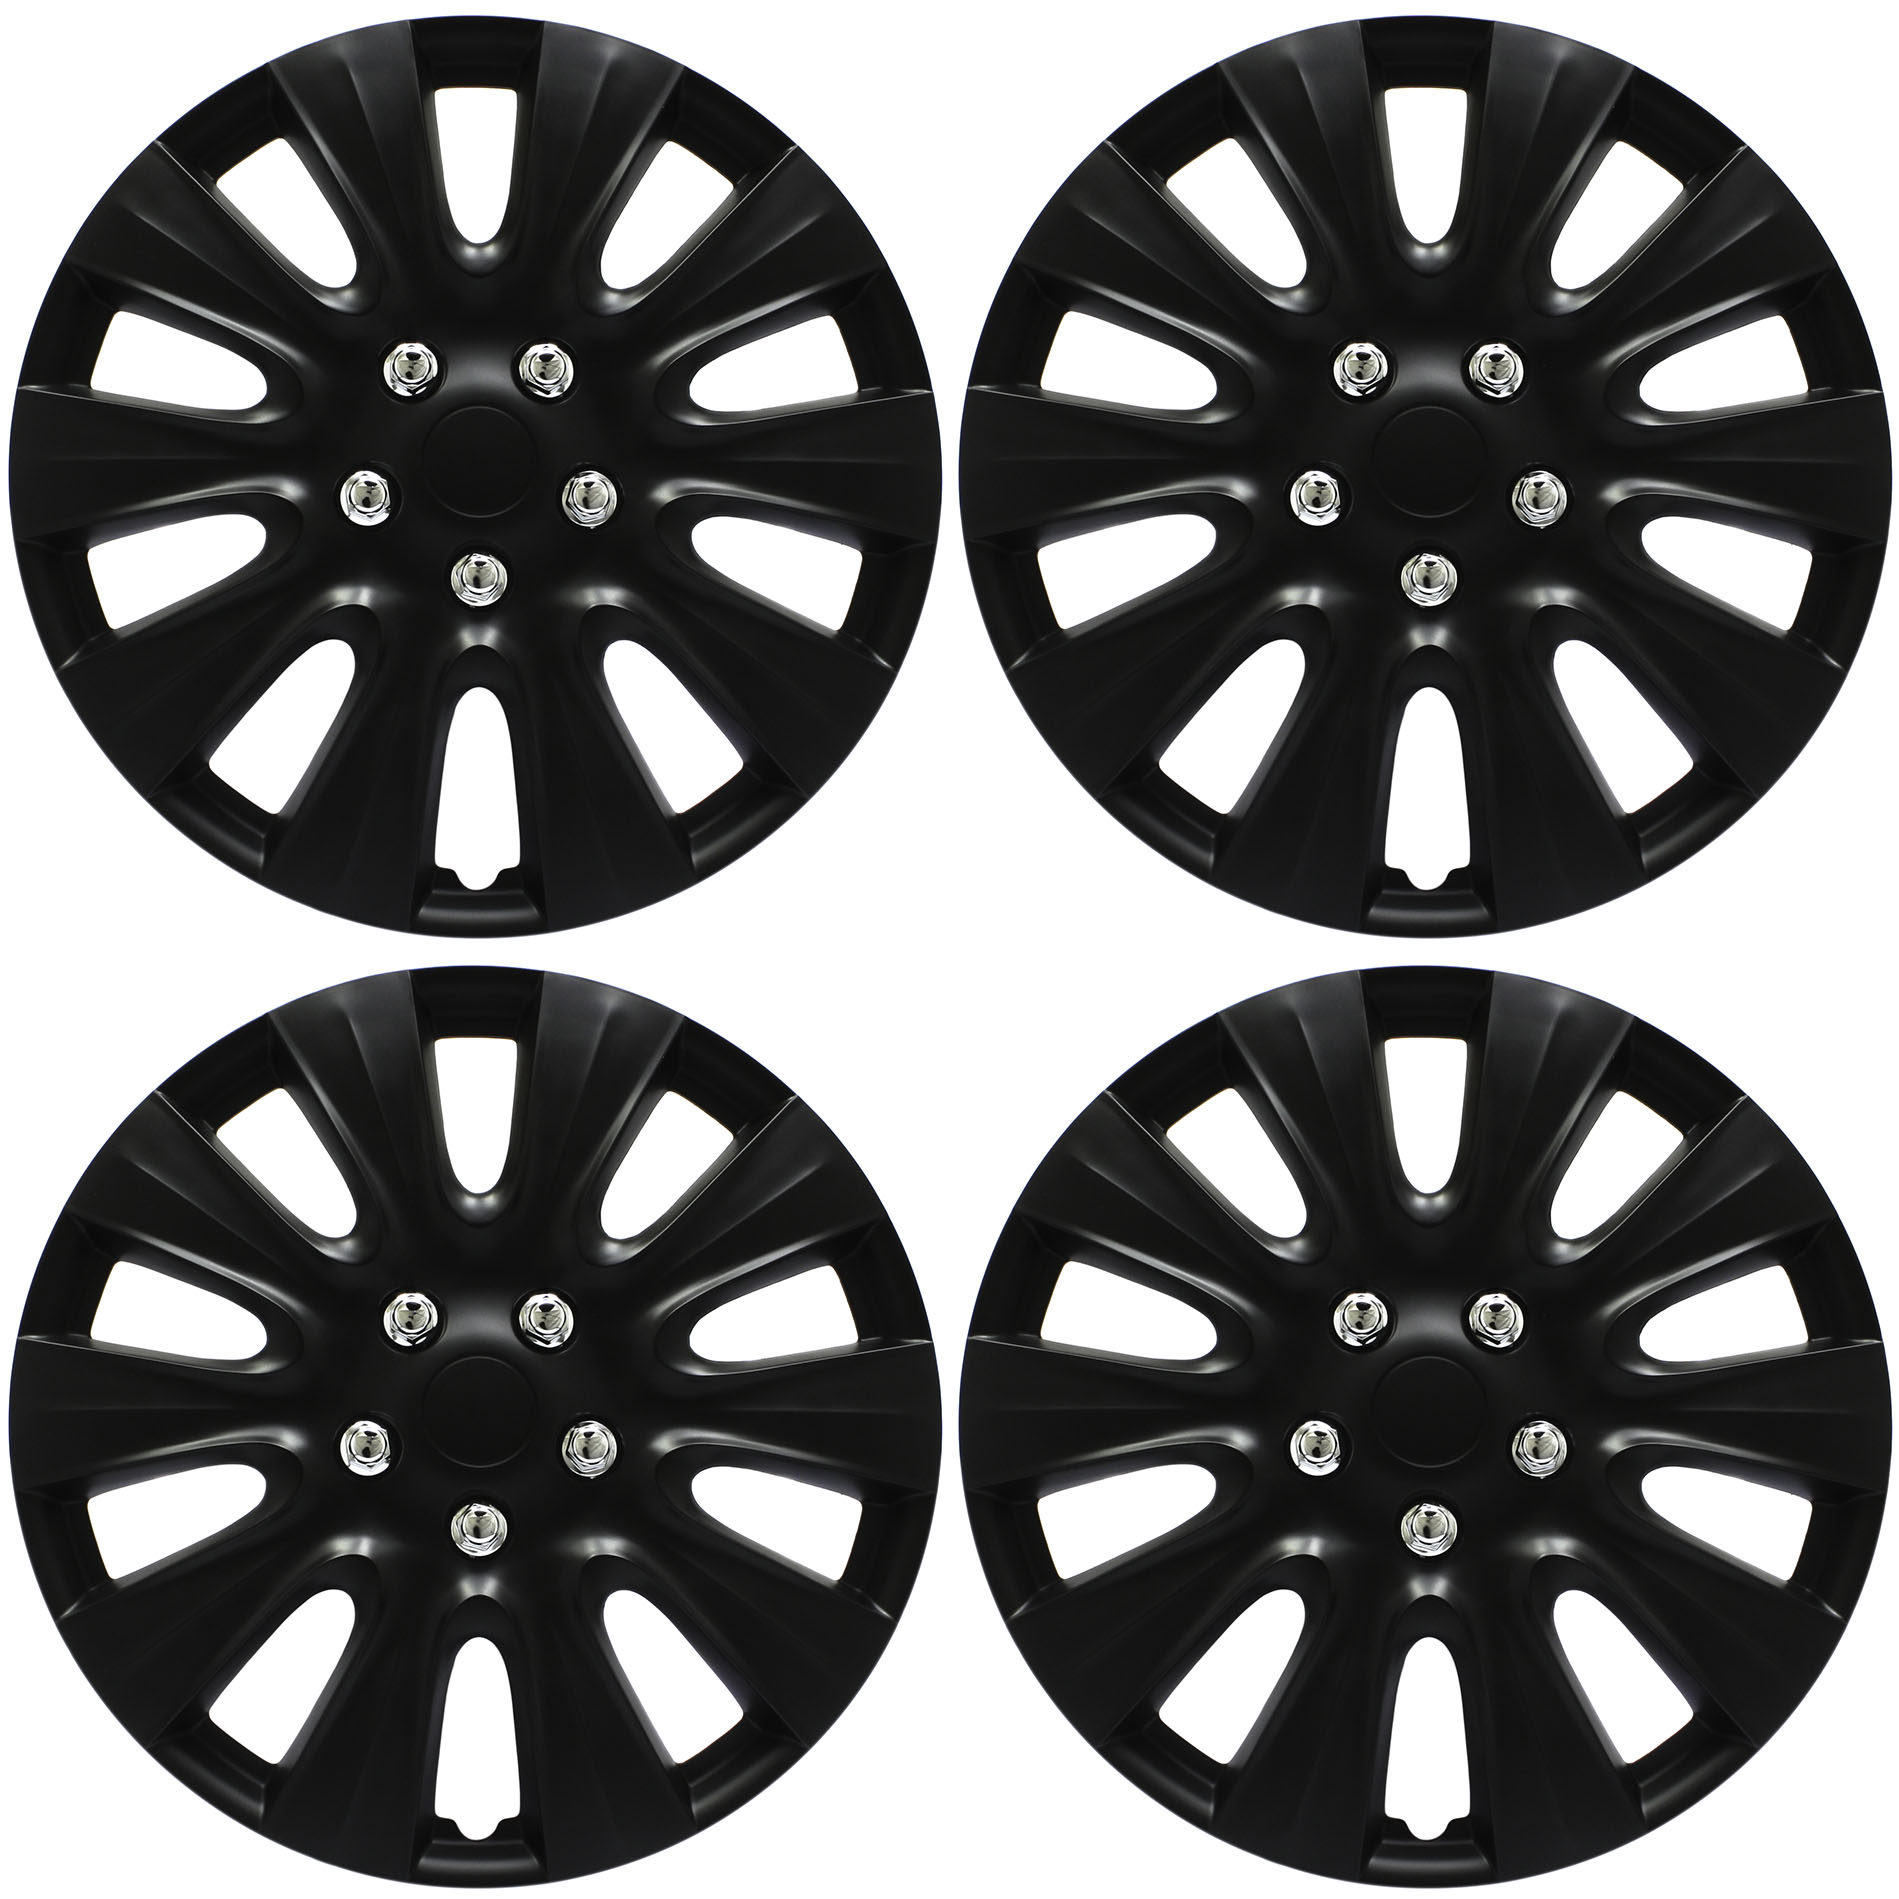 4pc hub cap black matte 17 inch for oem rim wheel replica cover 1934 Ford Truck details about 4pc hub cap black matte 17 inch for oem rim wheel replica cover covers caps